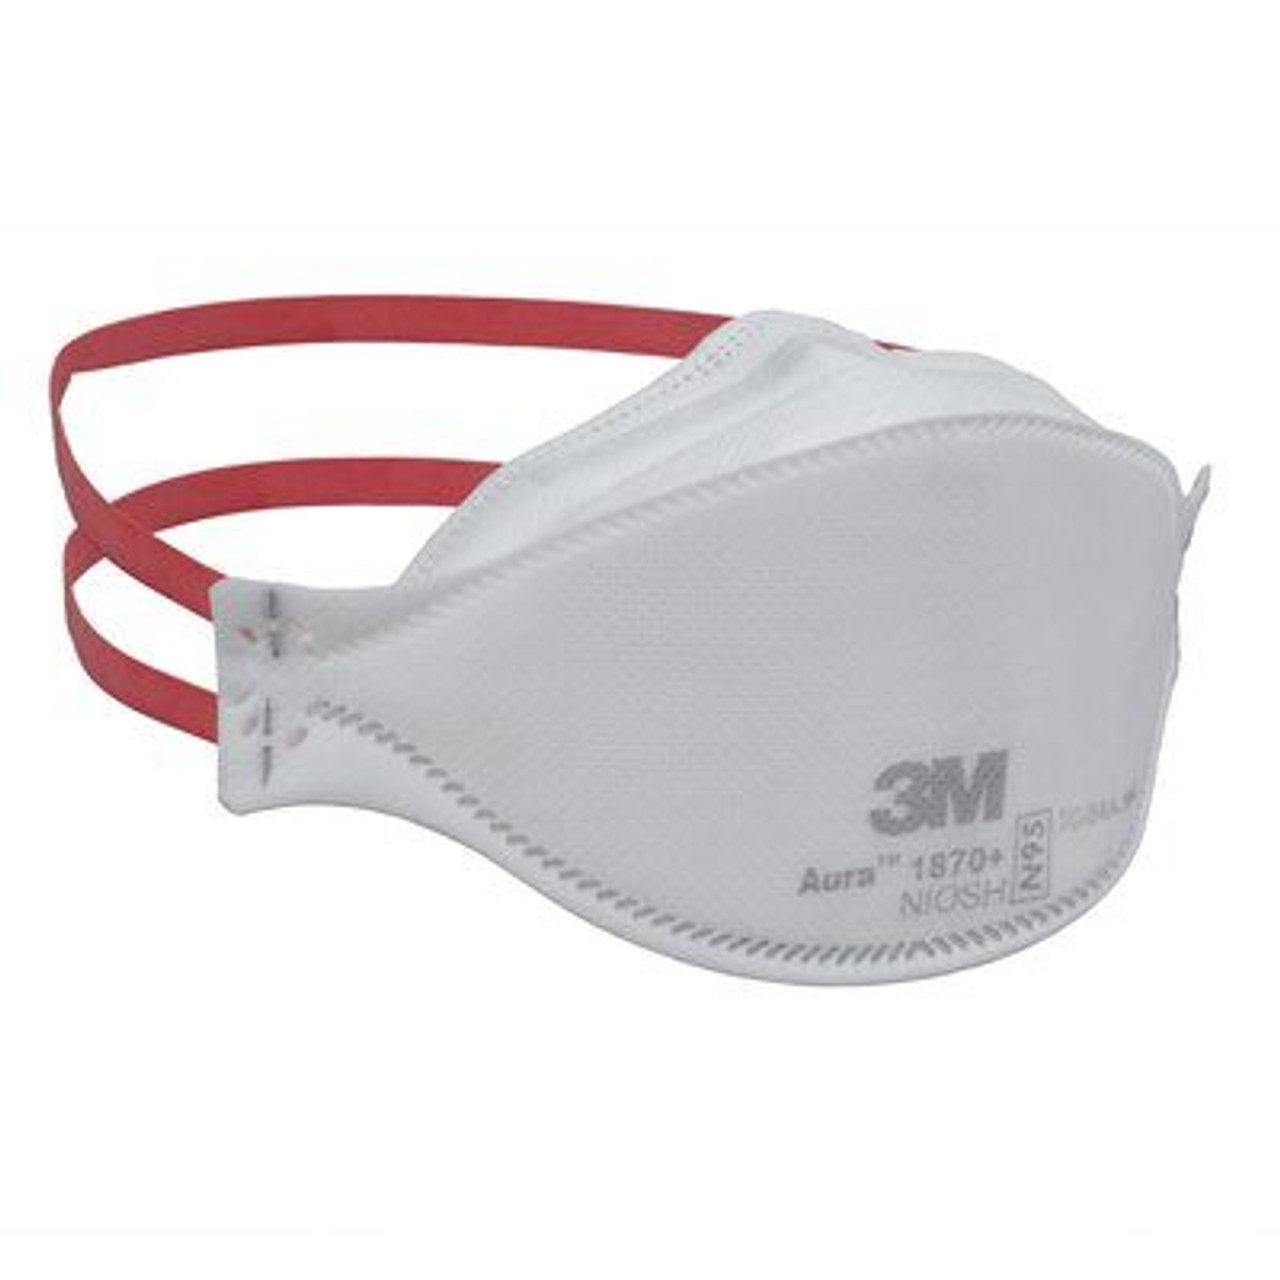 3m mouth mask